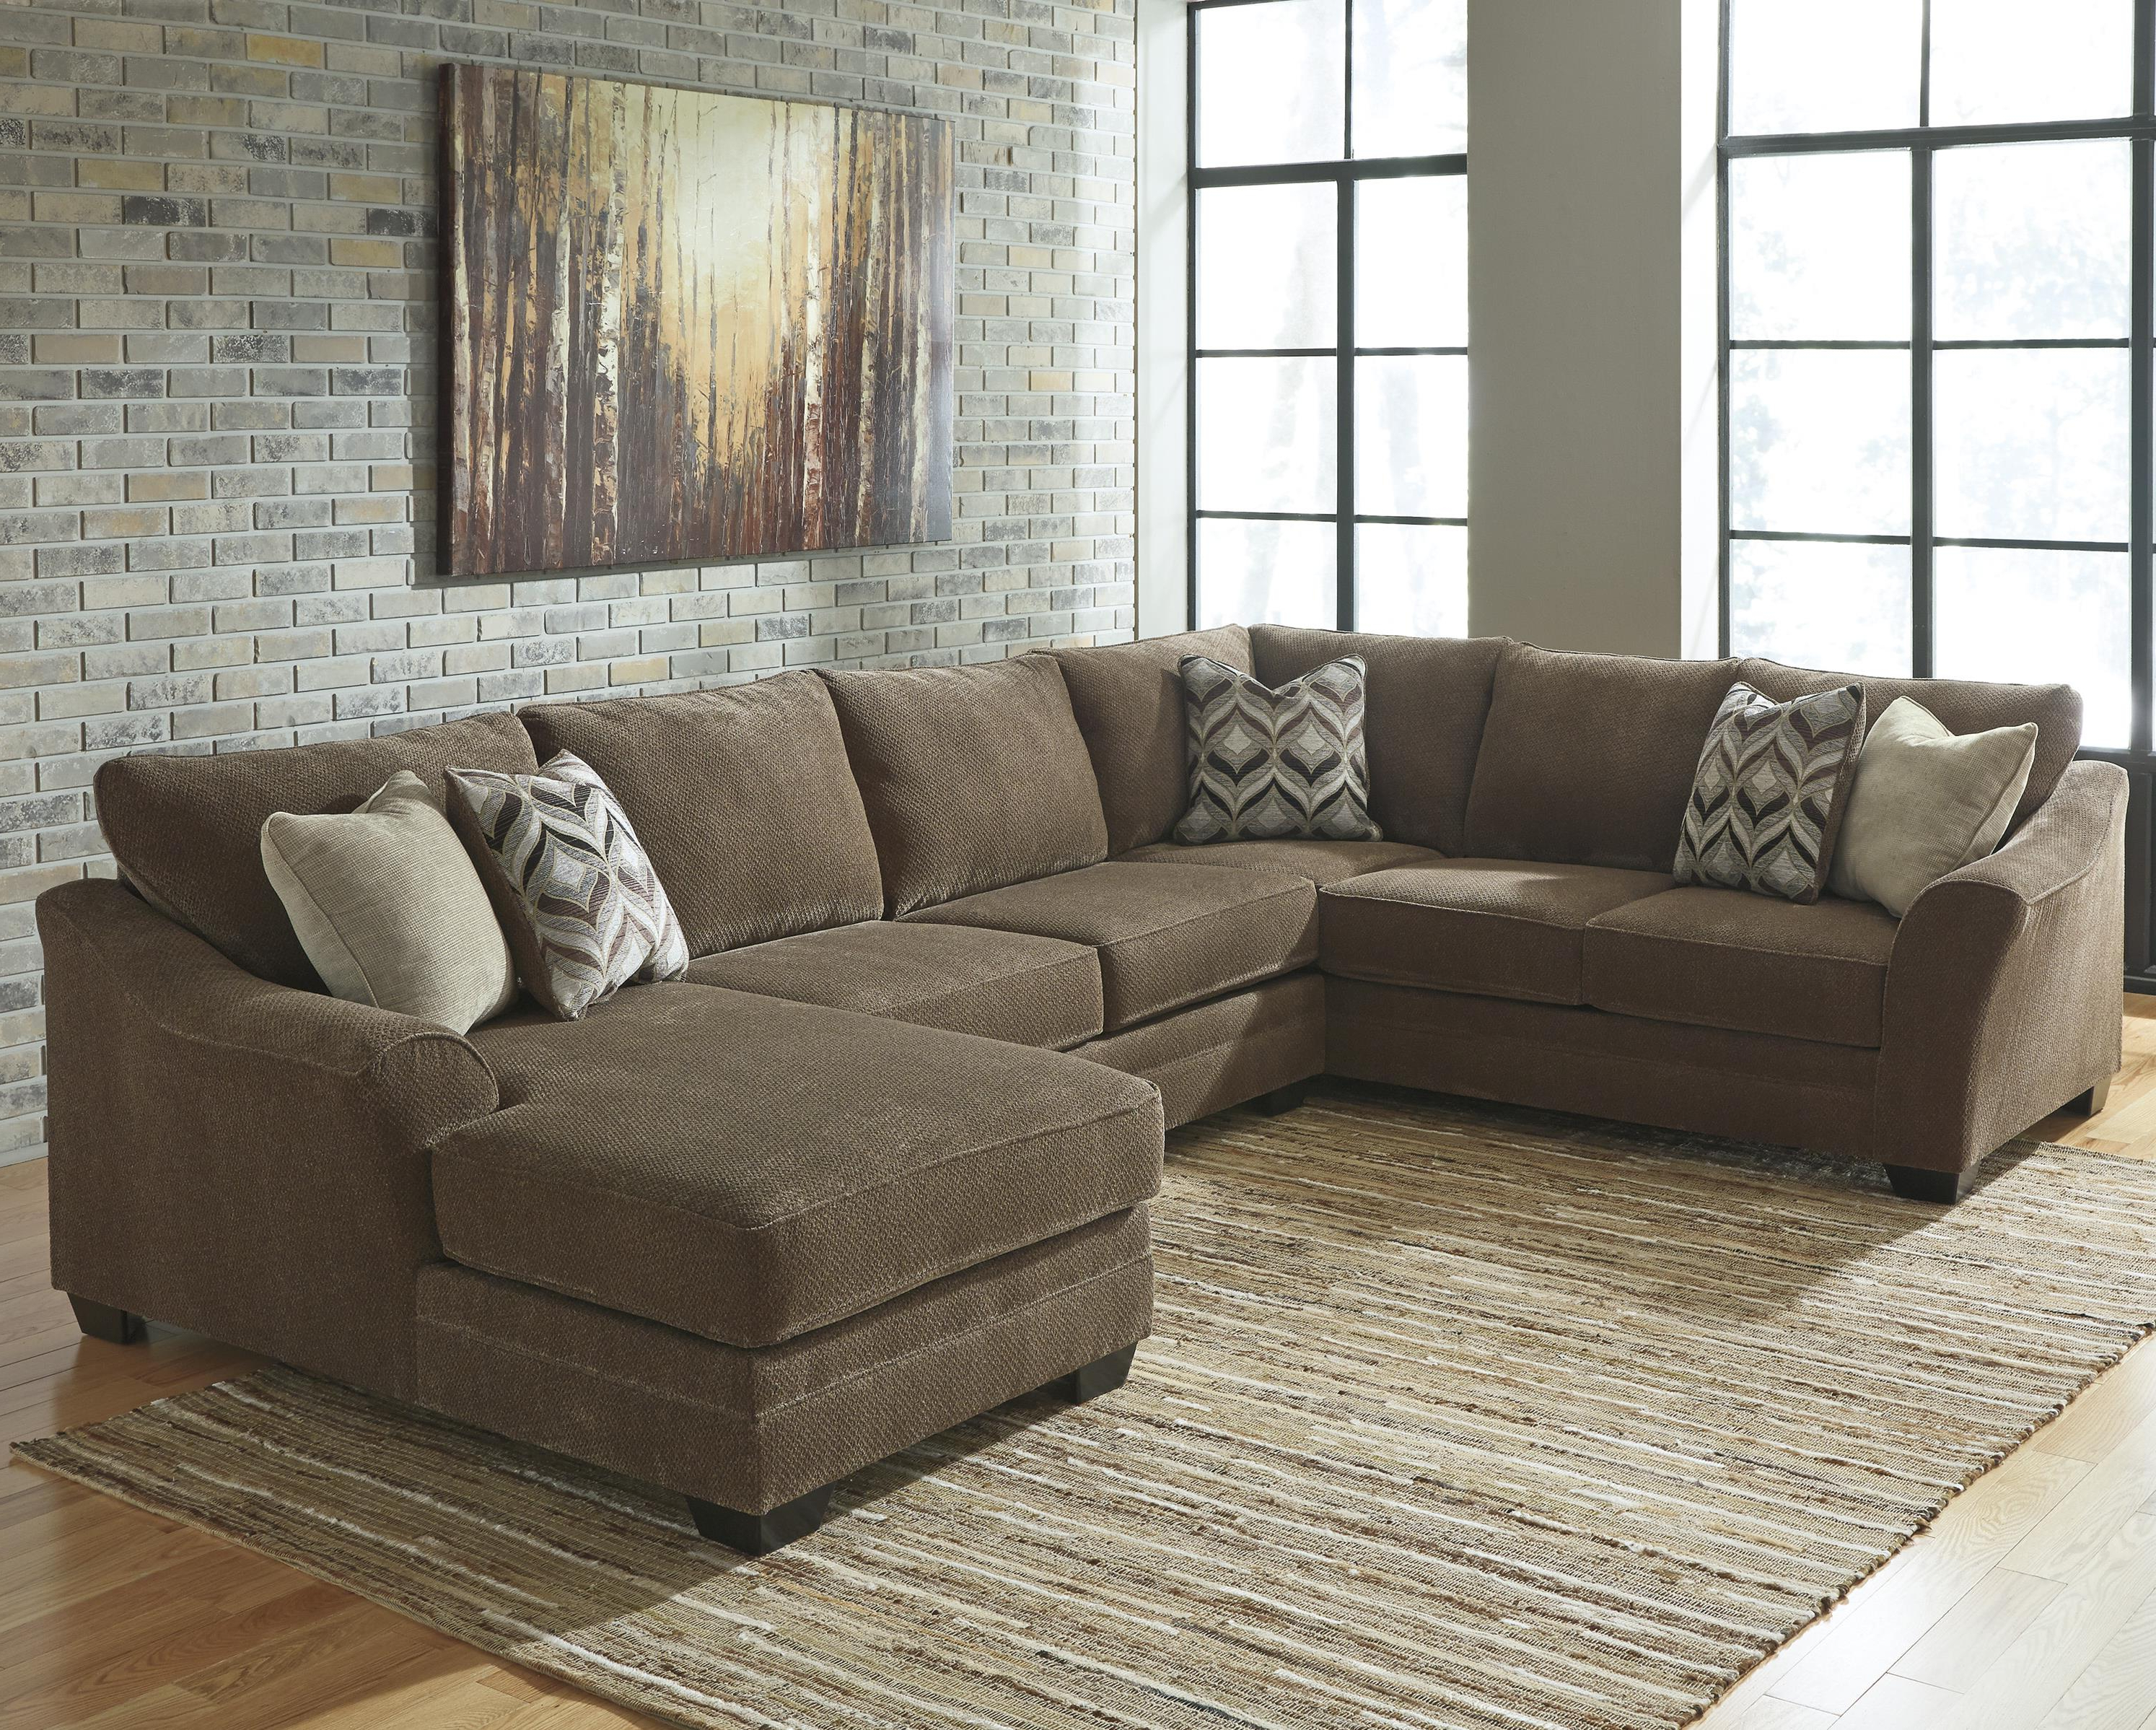 Popular Harper Foam 3 Piece Sectionals With Raf Chaise With 3 Piece Sectional – Locsbyhelenelorasa (View 6 of 20)